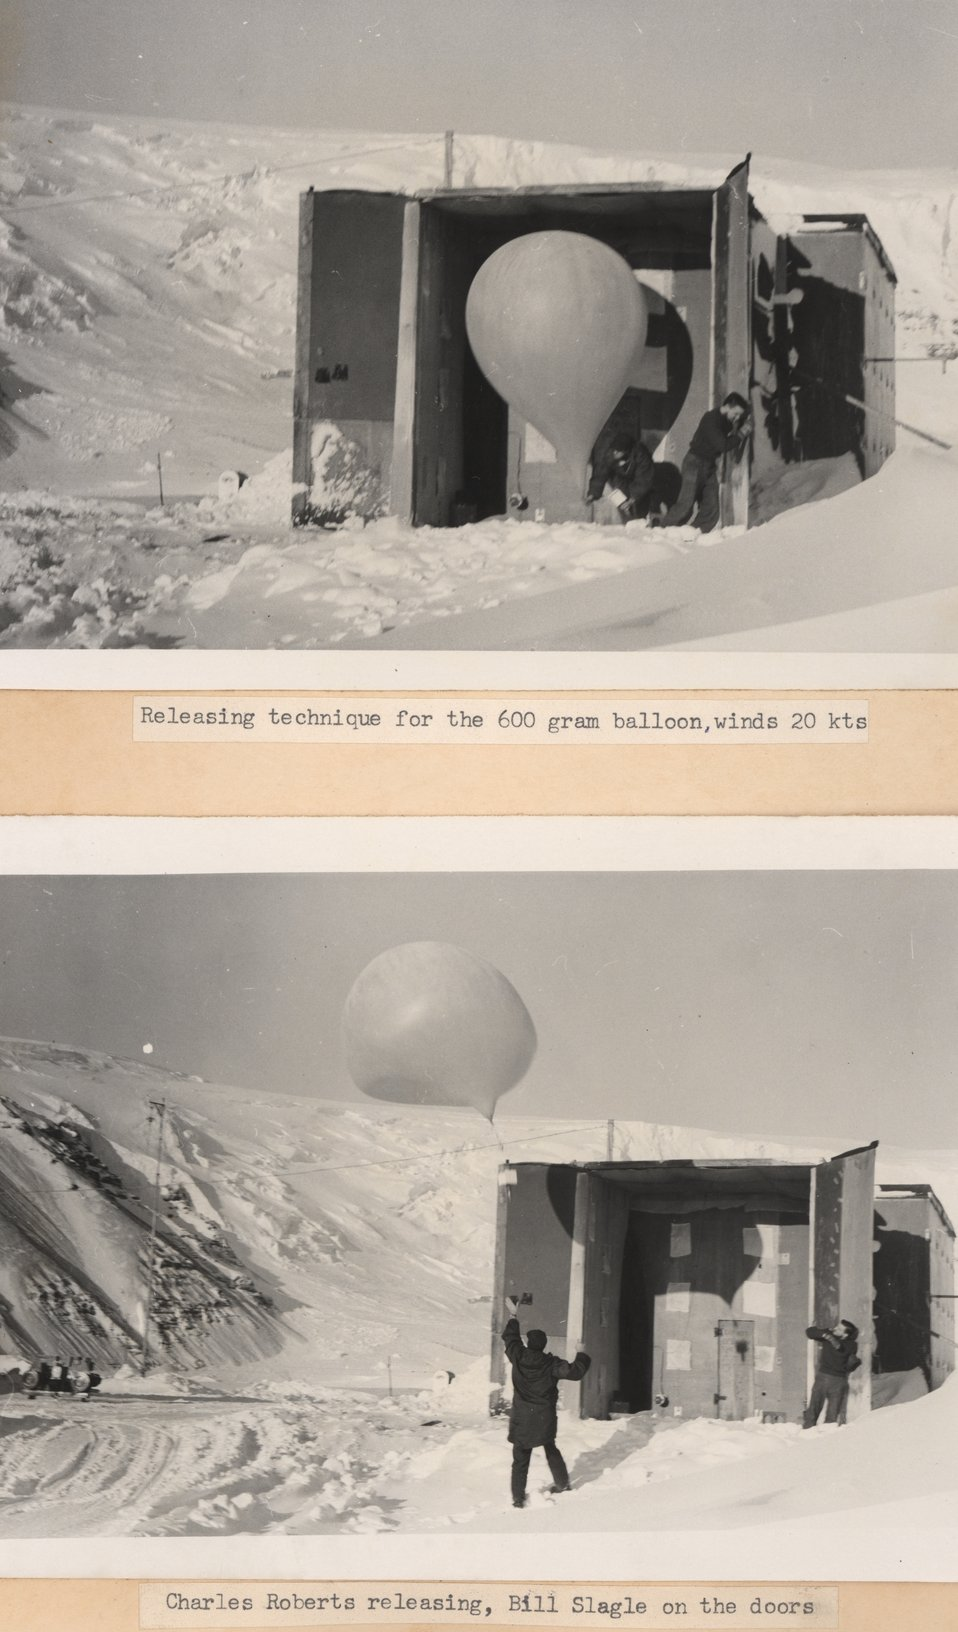 Releasing technique for the 600 gram balloon, winds 20 knowts.  Lower image - Charles Roberts releasing, Bill Slagle on the doors.